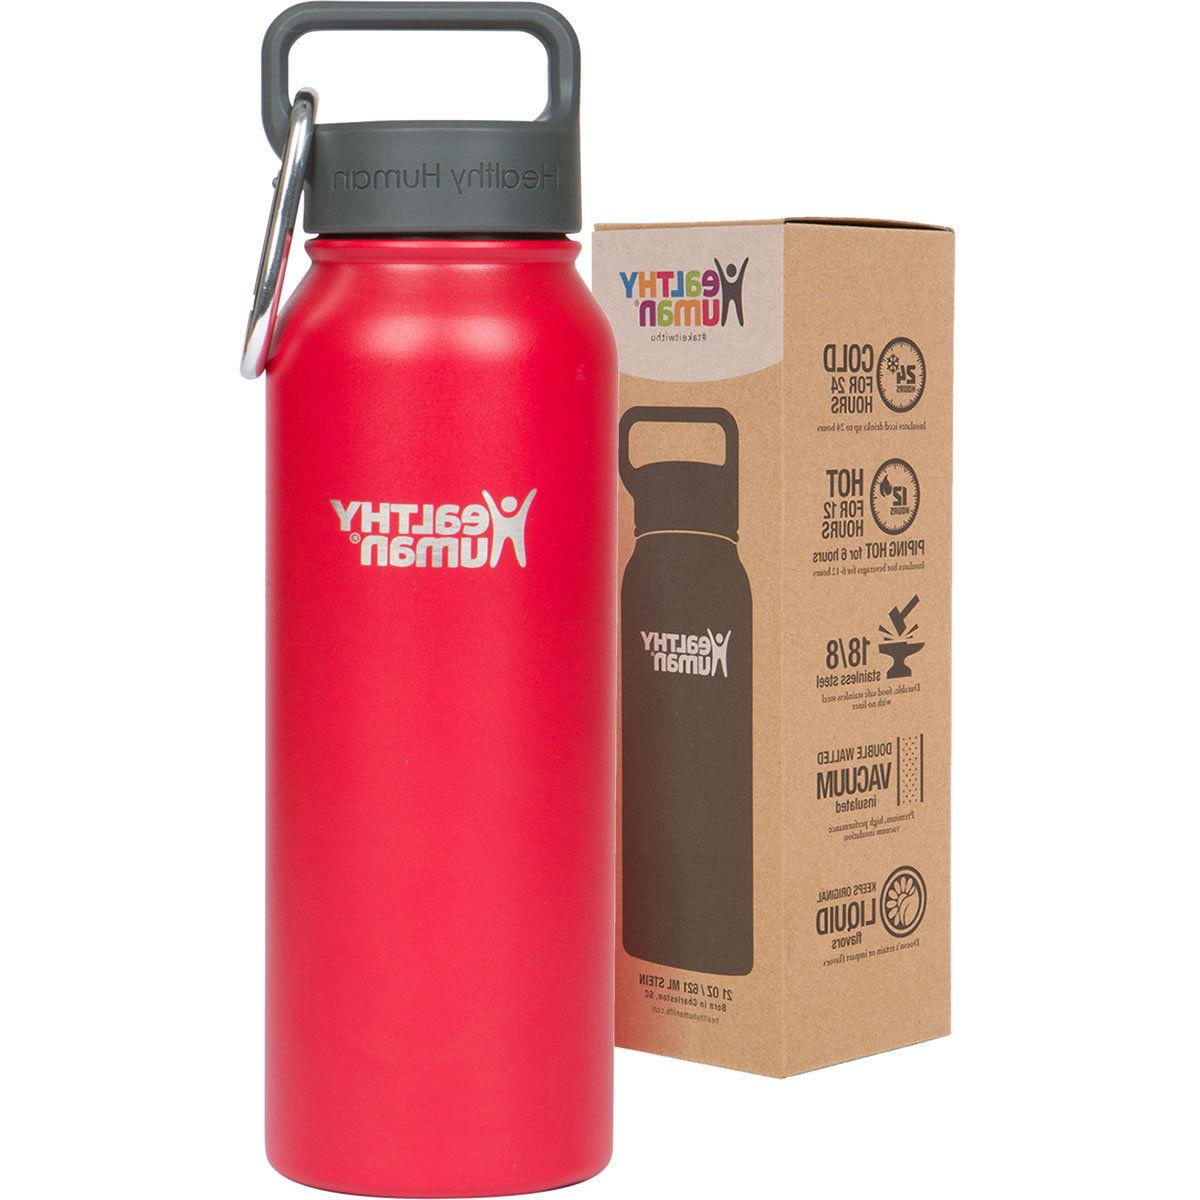 21 oz red hot insulated stainless steel